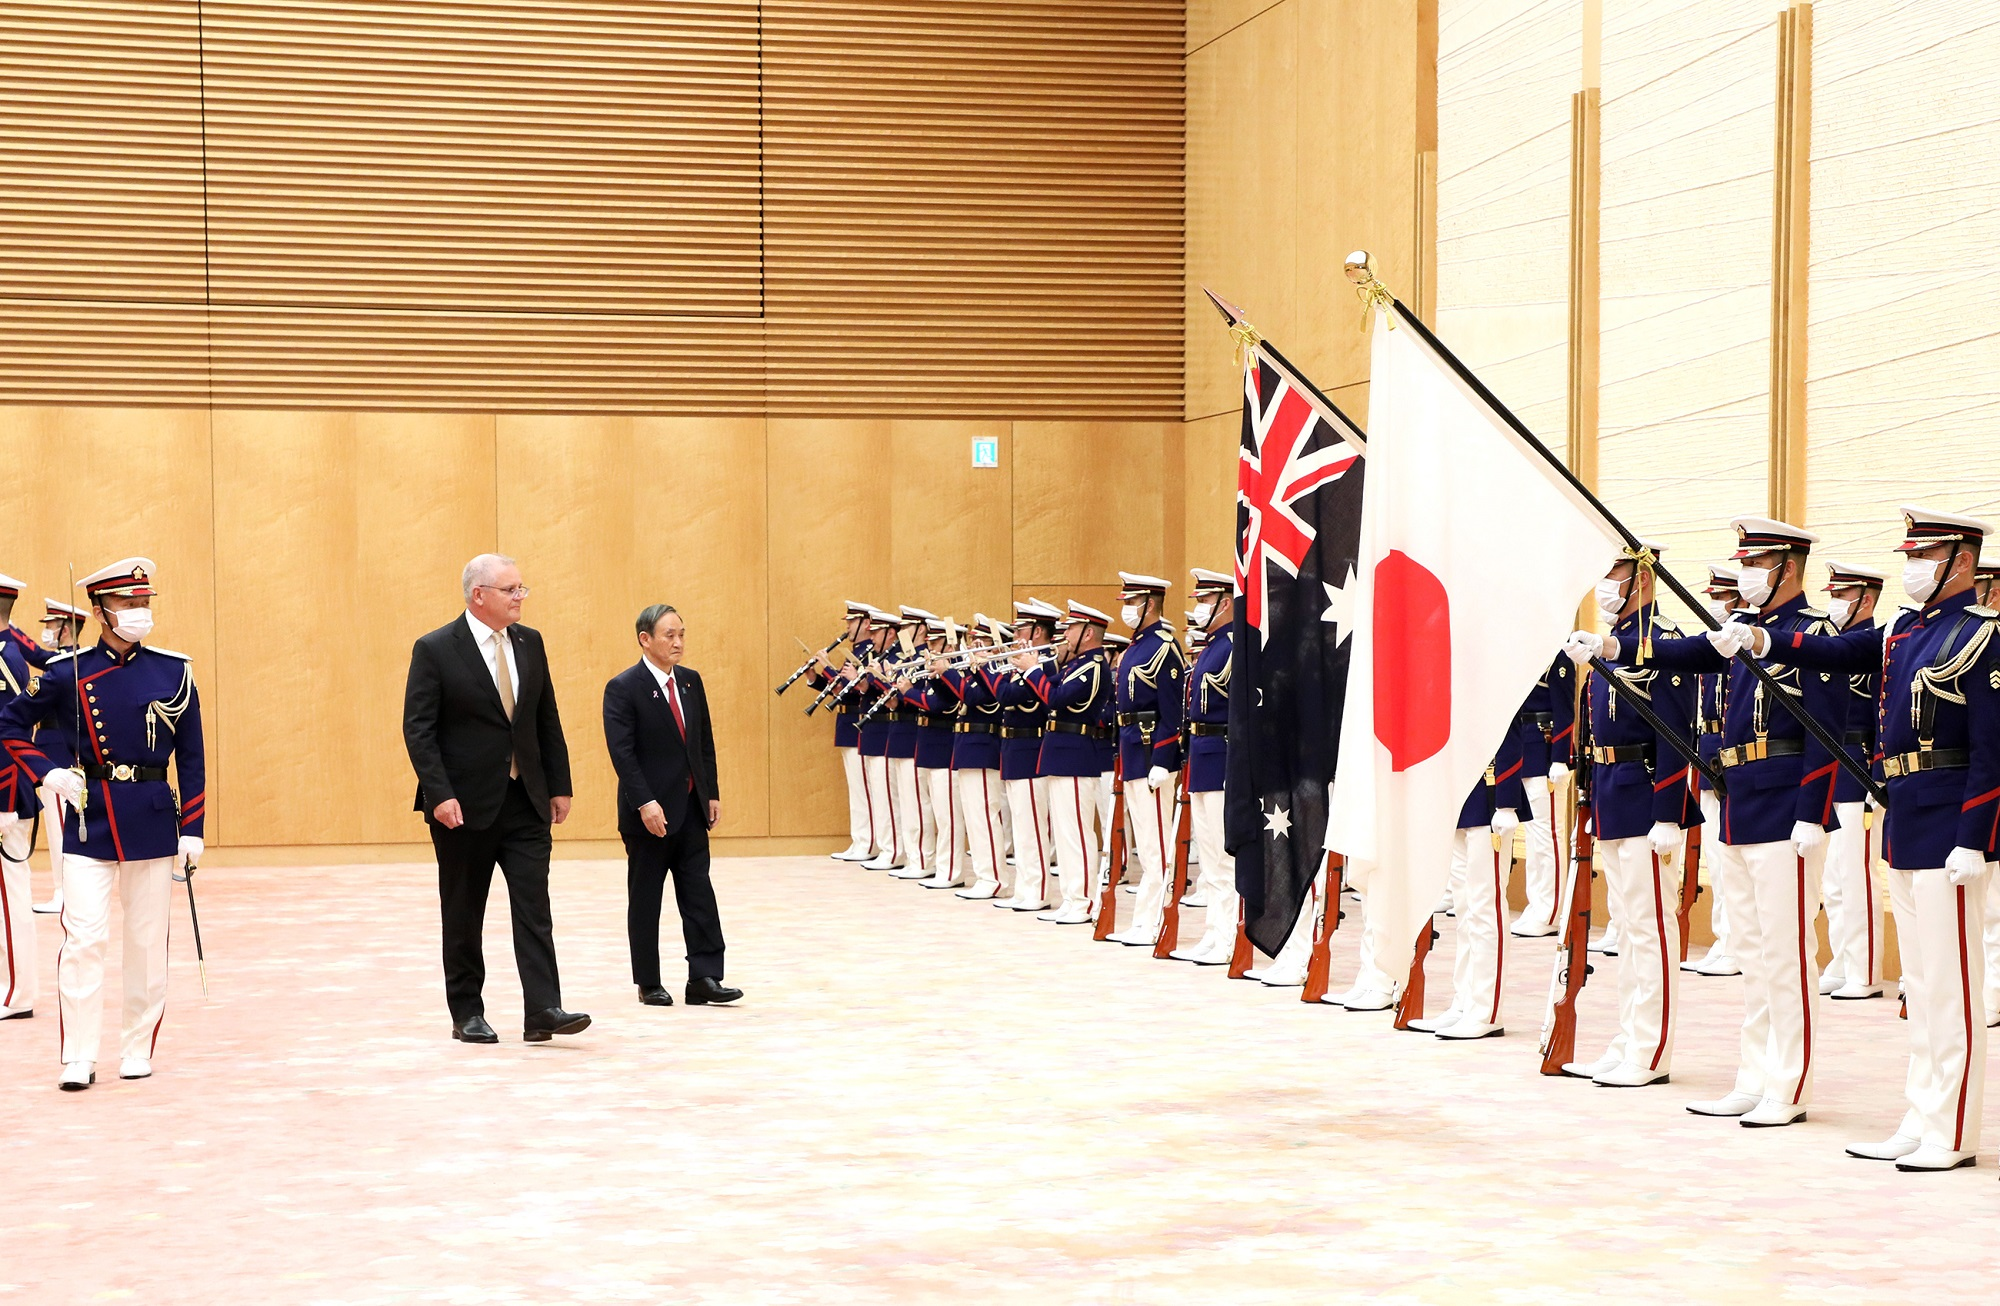 Photograph of the salute and the guard of honor ceremony (5)